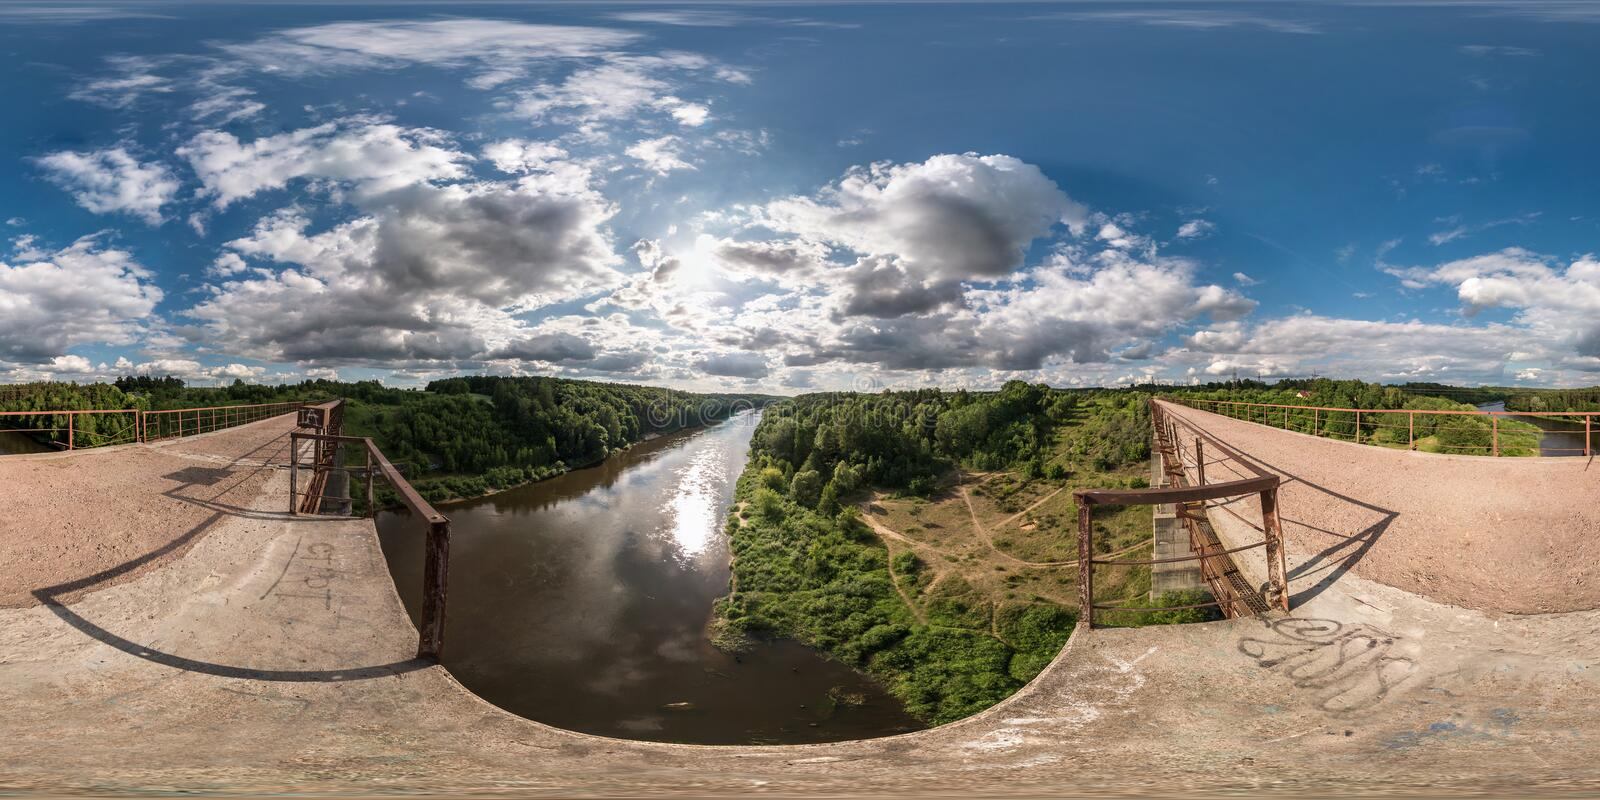 Full 360 degree seamless panorama in equirectangular spherical equidistant projection. Panorama view on abandon bridge near river. With nice clouds. Skybox as royalty free stock photography